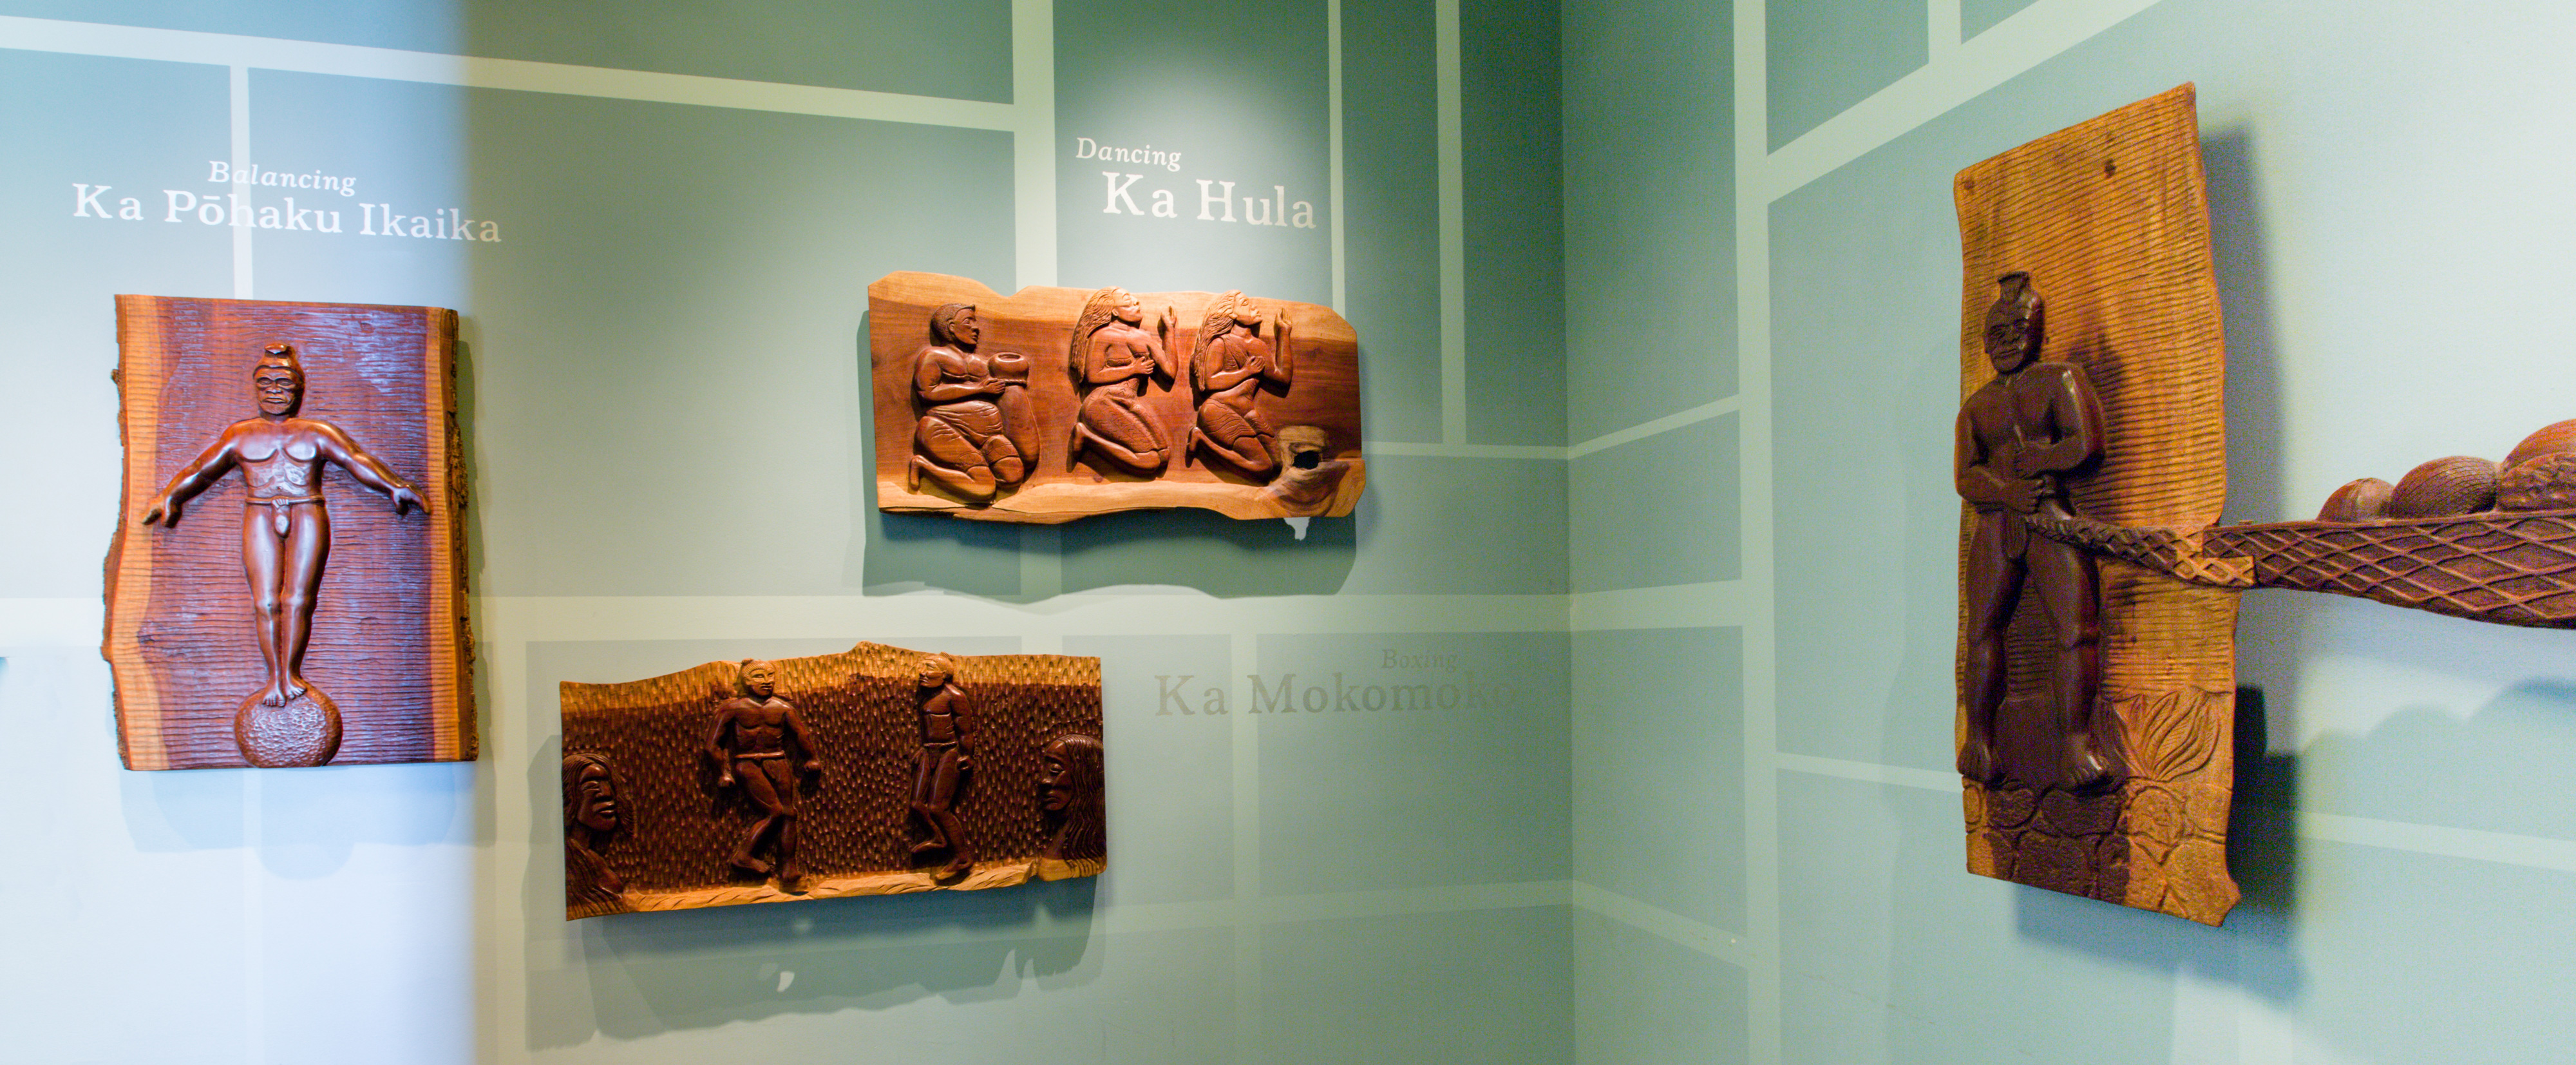 Wood relief carvings of natives engaged in various activities, with descriptive Hawaiian phrases and their English translations